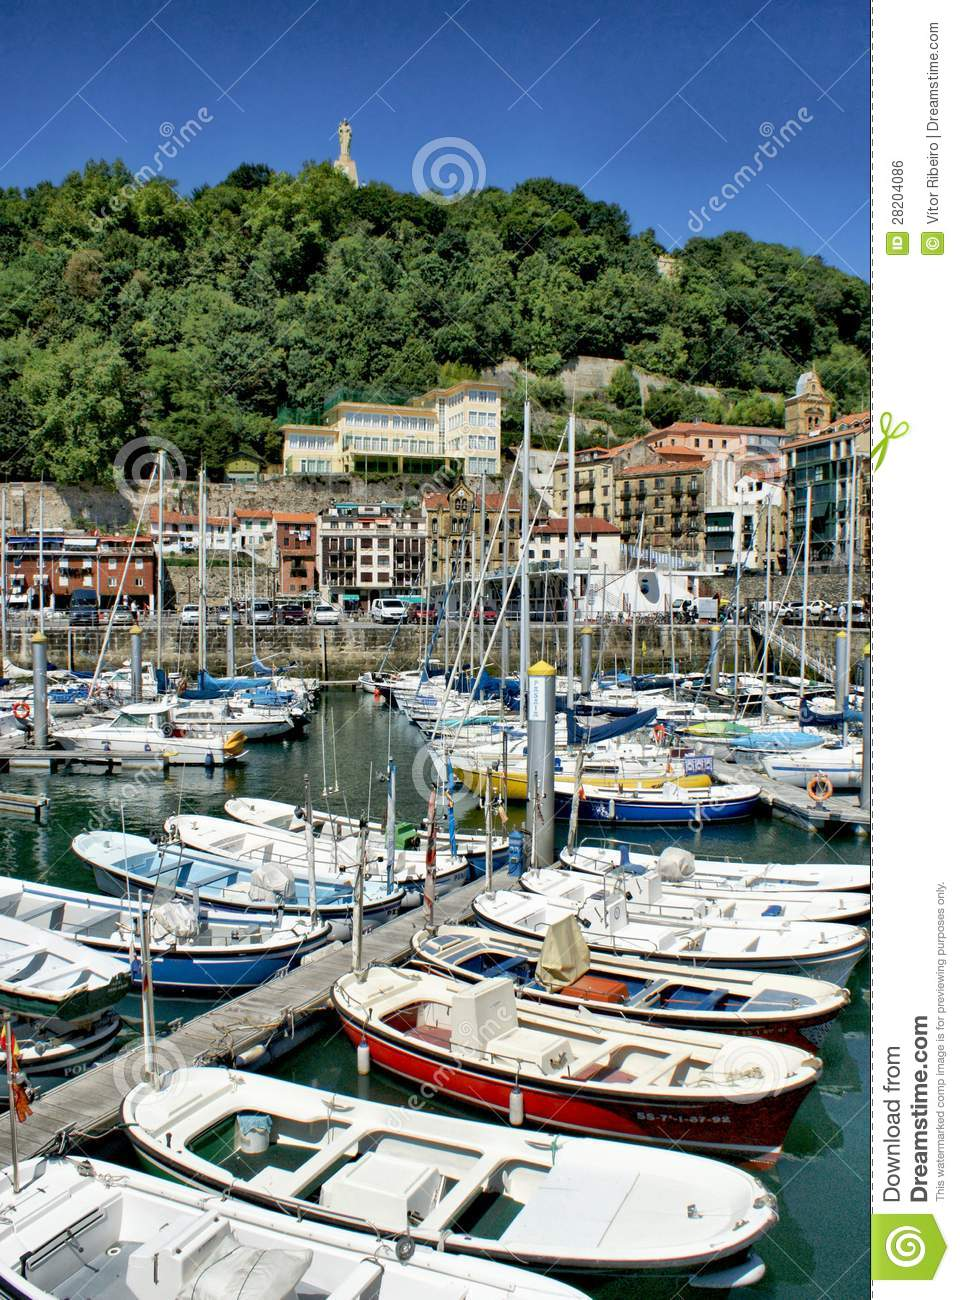 Download San Sebastian (Donostia) Harbour Stock Photo - Image of ocean, gipuzkoa: 28204086